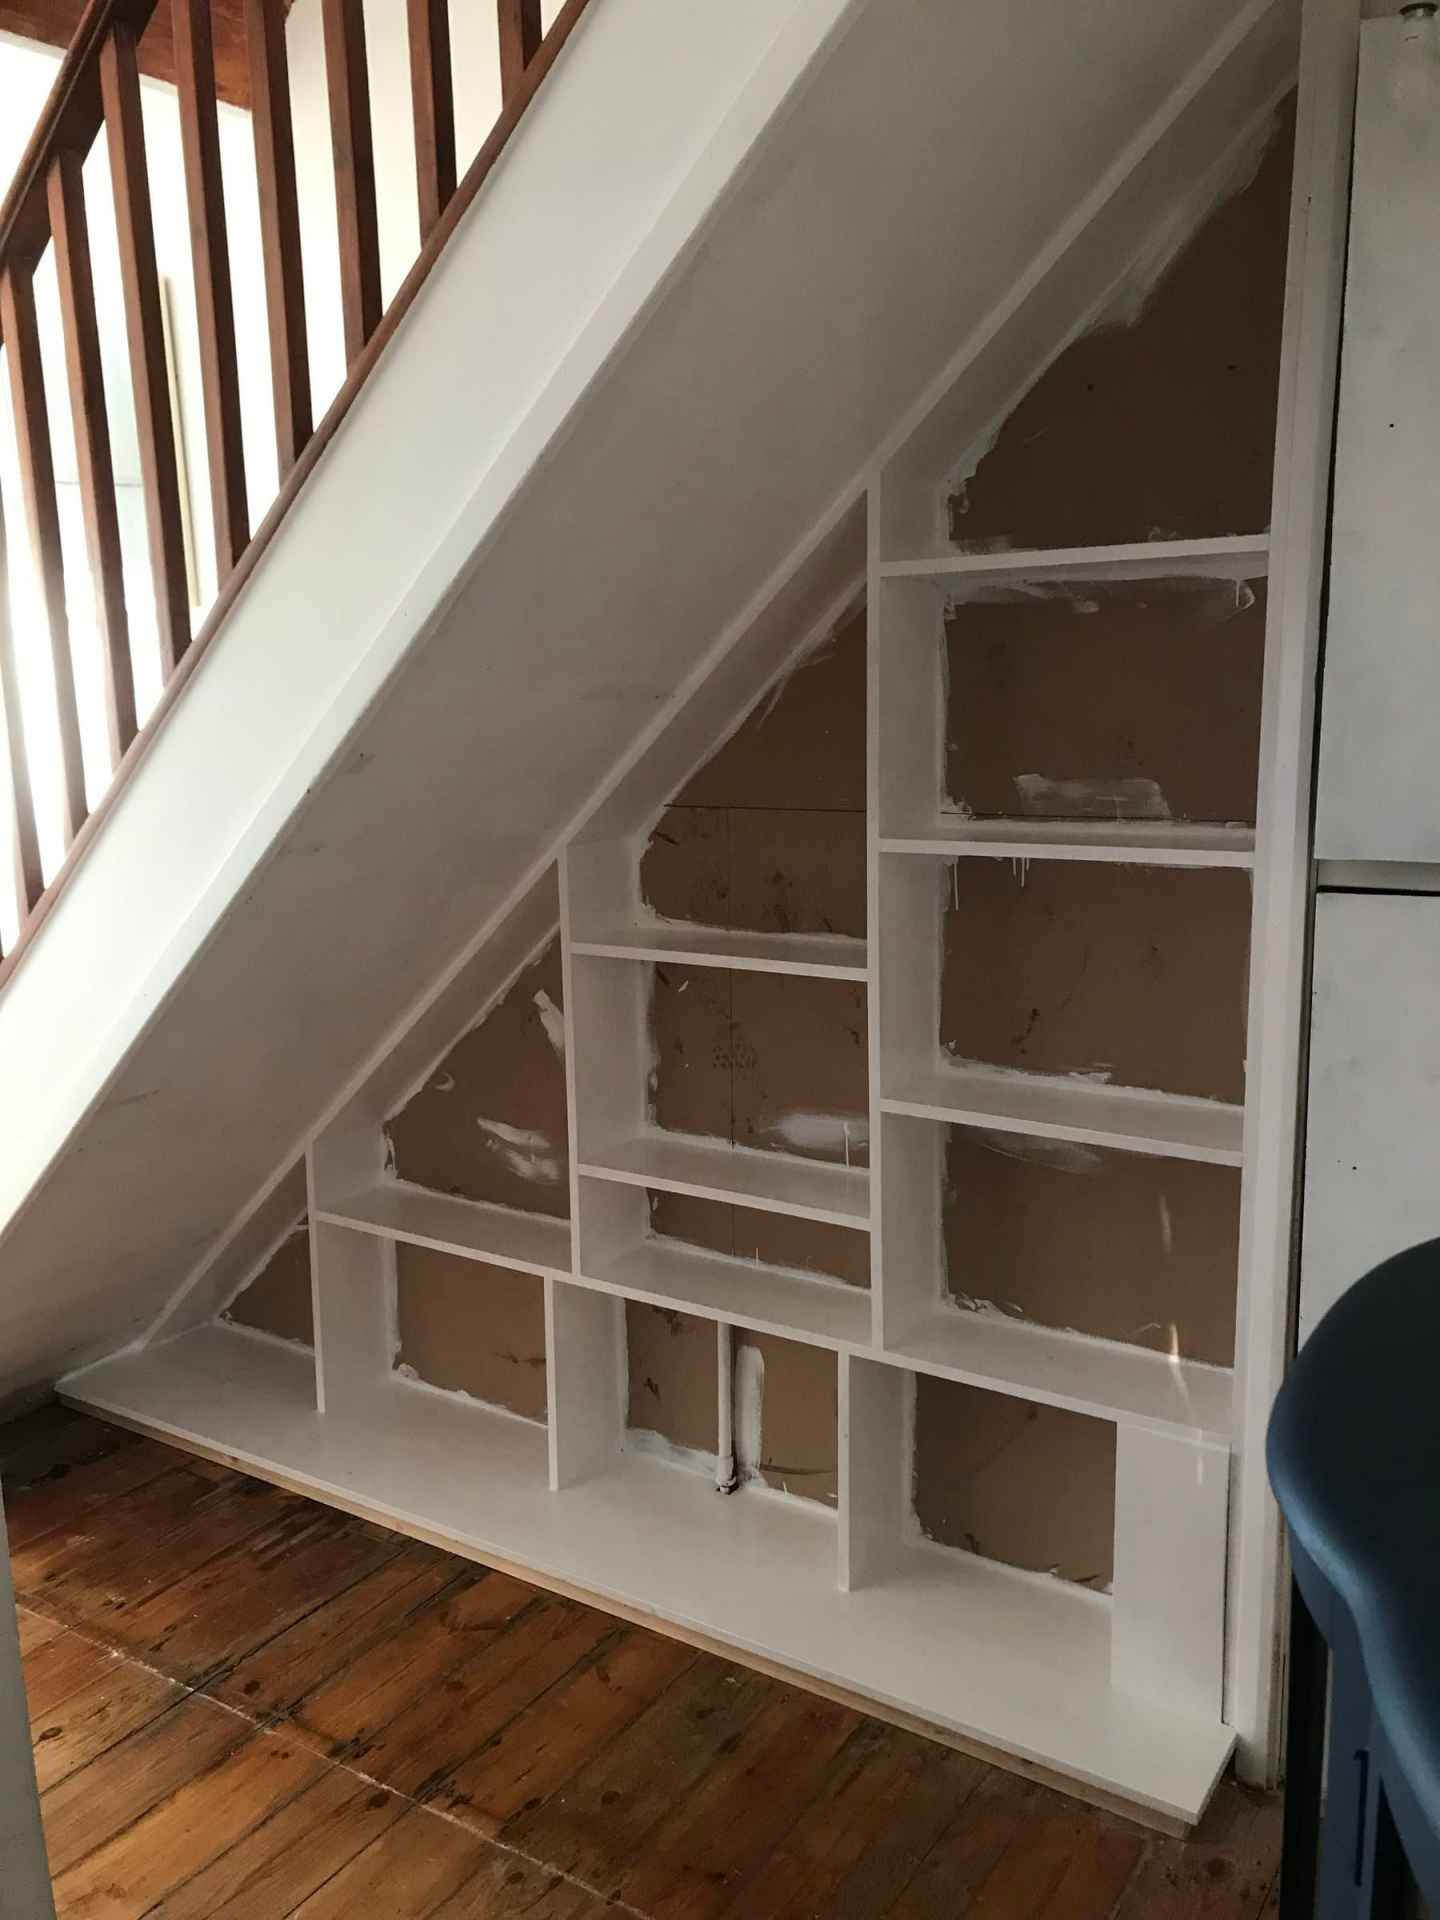 storage, under stairs, under stairs storage, shelves, small spaces, office space, small office, bookshelves, storage solutions, inspiration, hallway, hallway inspiration, diy